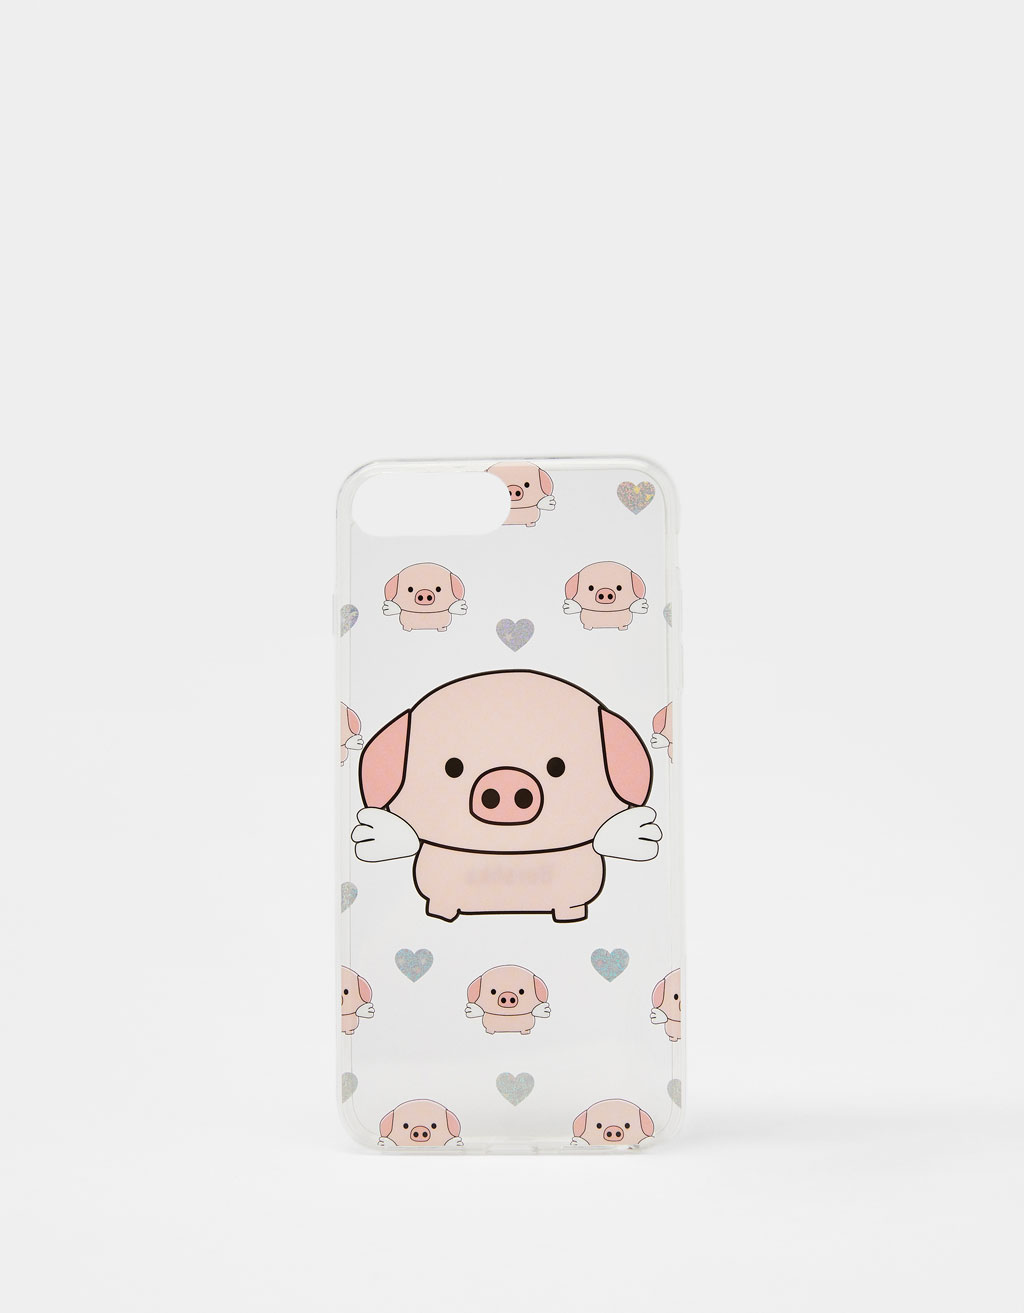 Carcassa Little Pig iPhone 6 plus/7 plus/8 plus